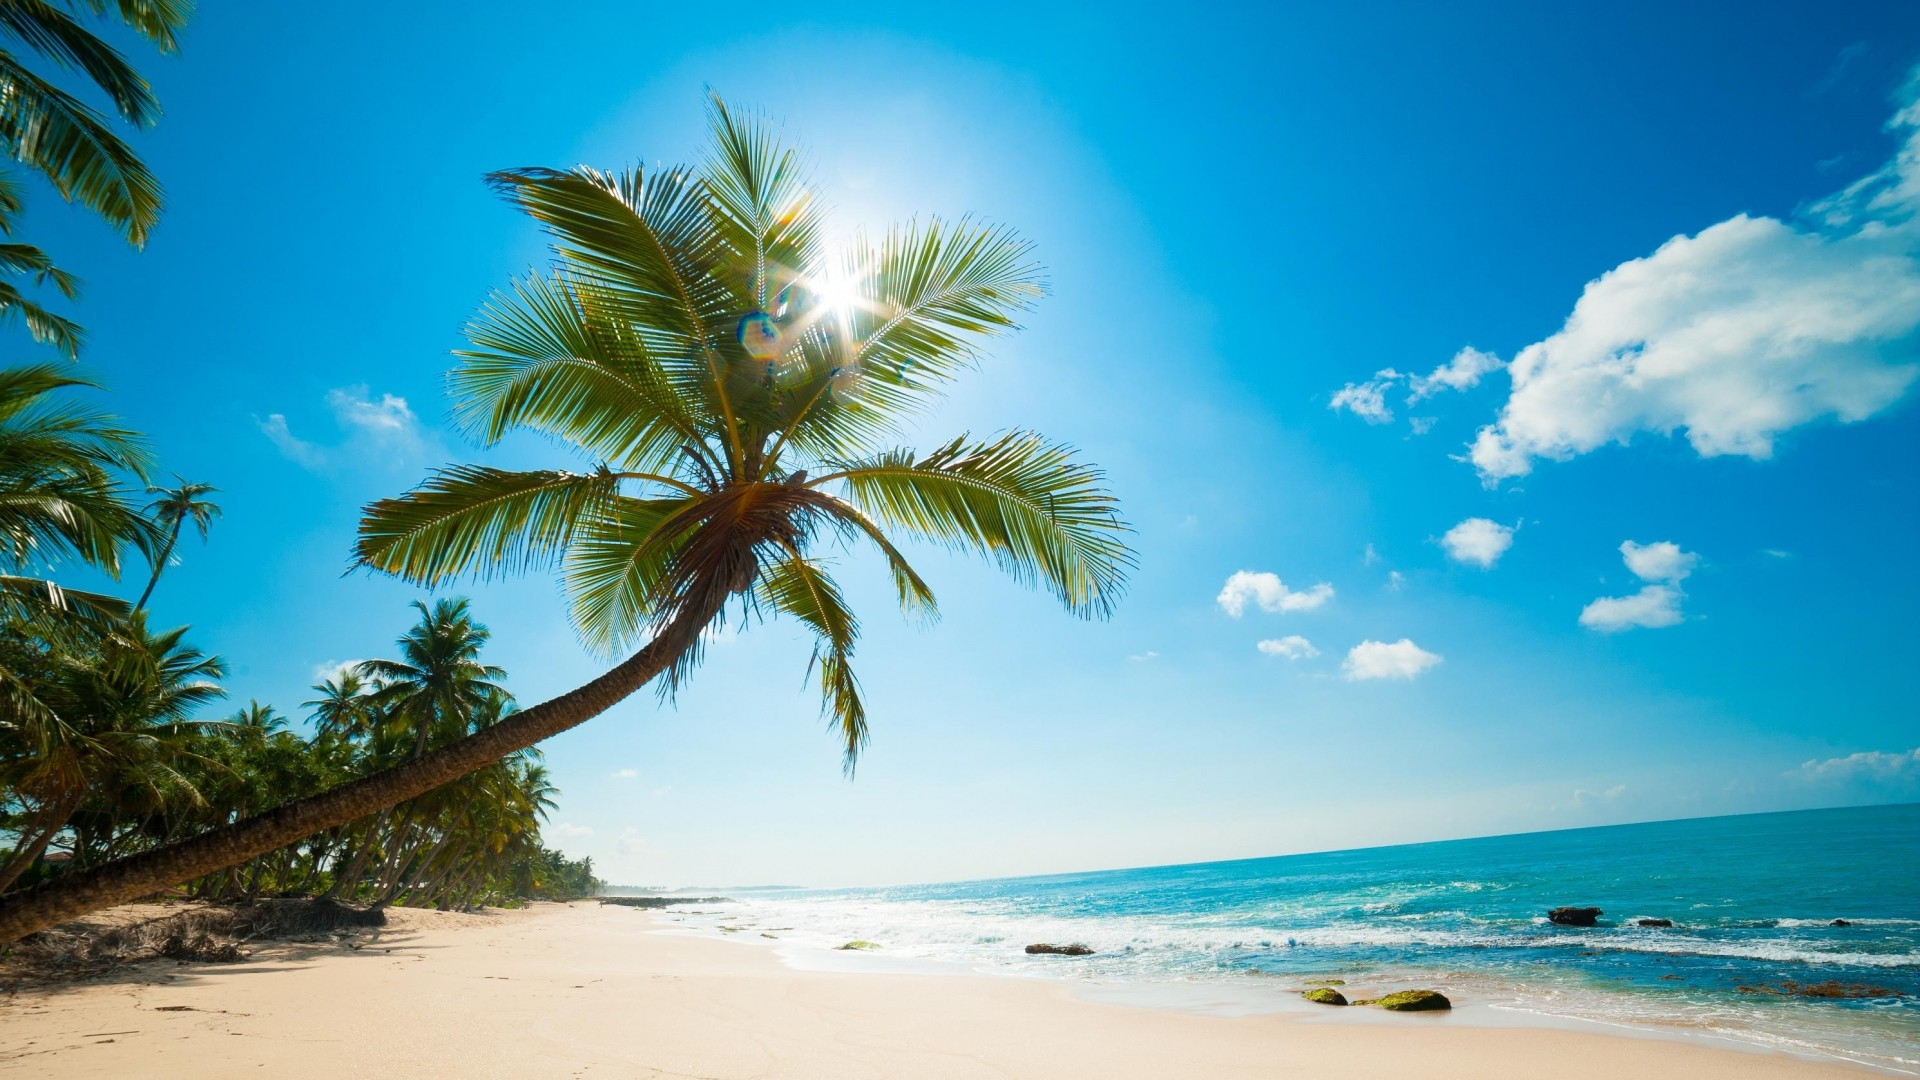 Get the latest sea, sand, palm trees news, pictures and videos and learn  all about sea, sand, palm trees from wallpapers4u.org, your wallpaper news  source.